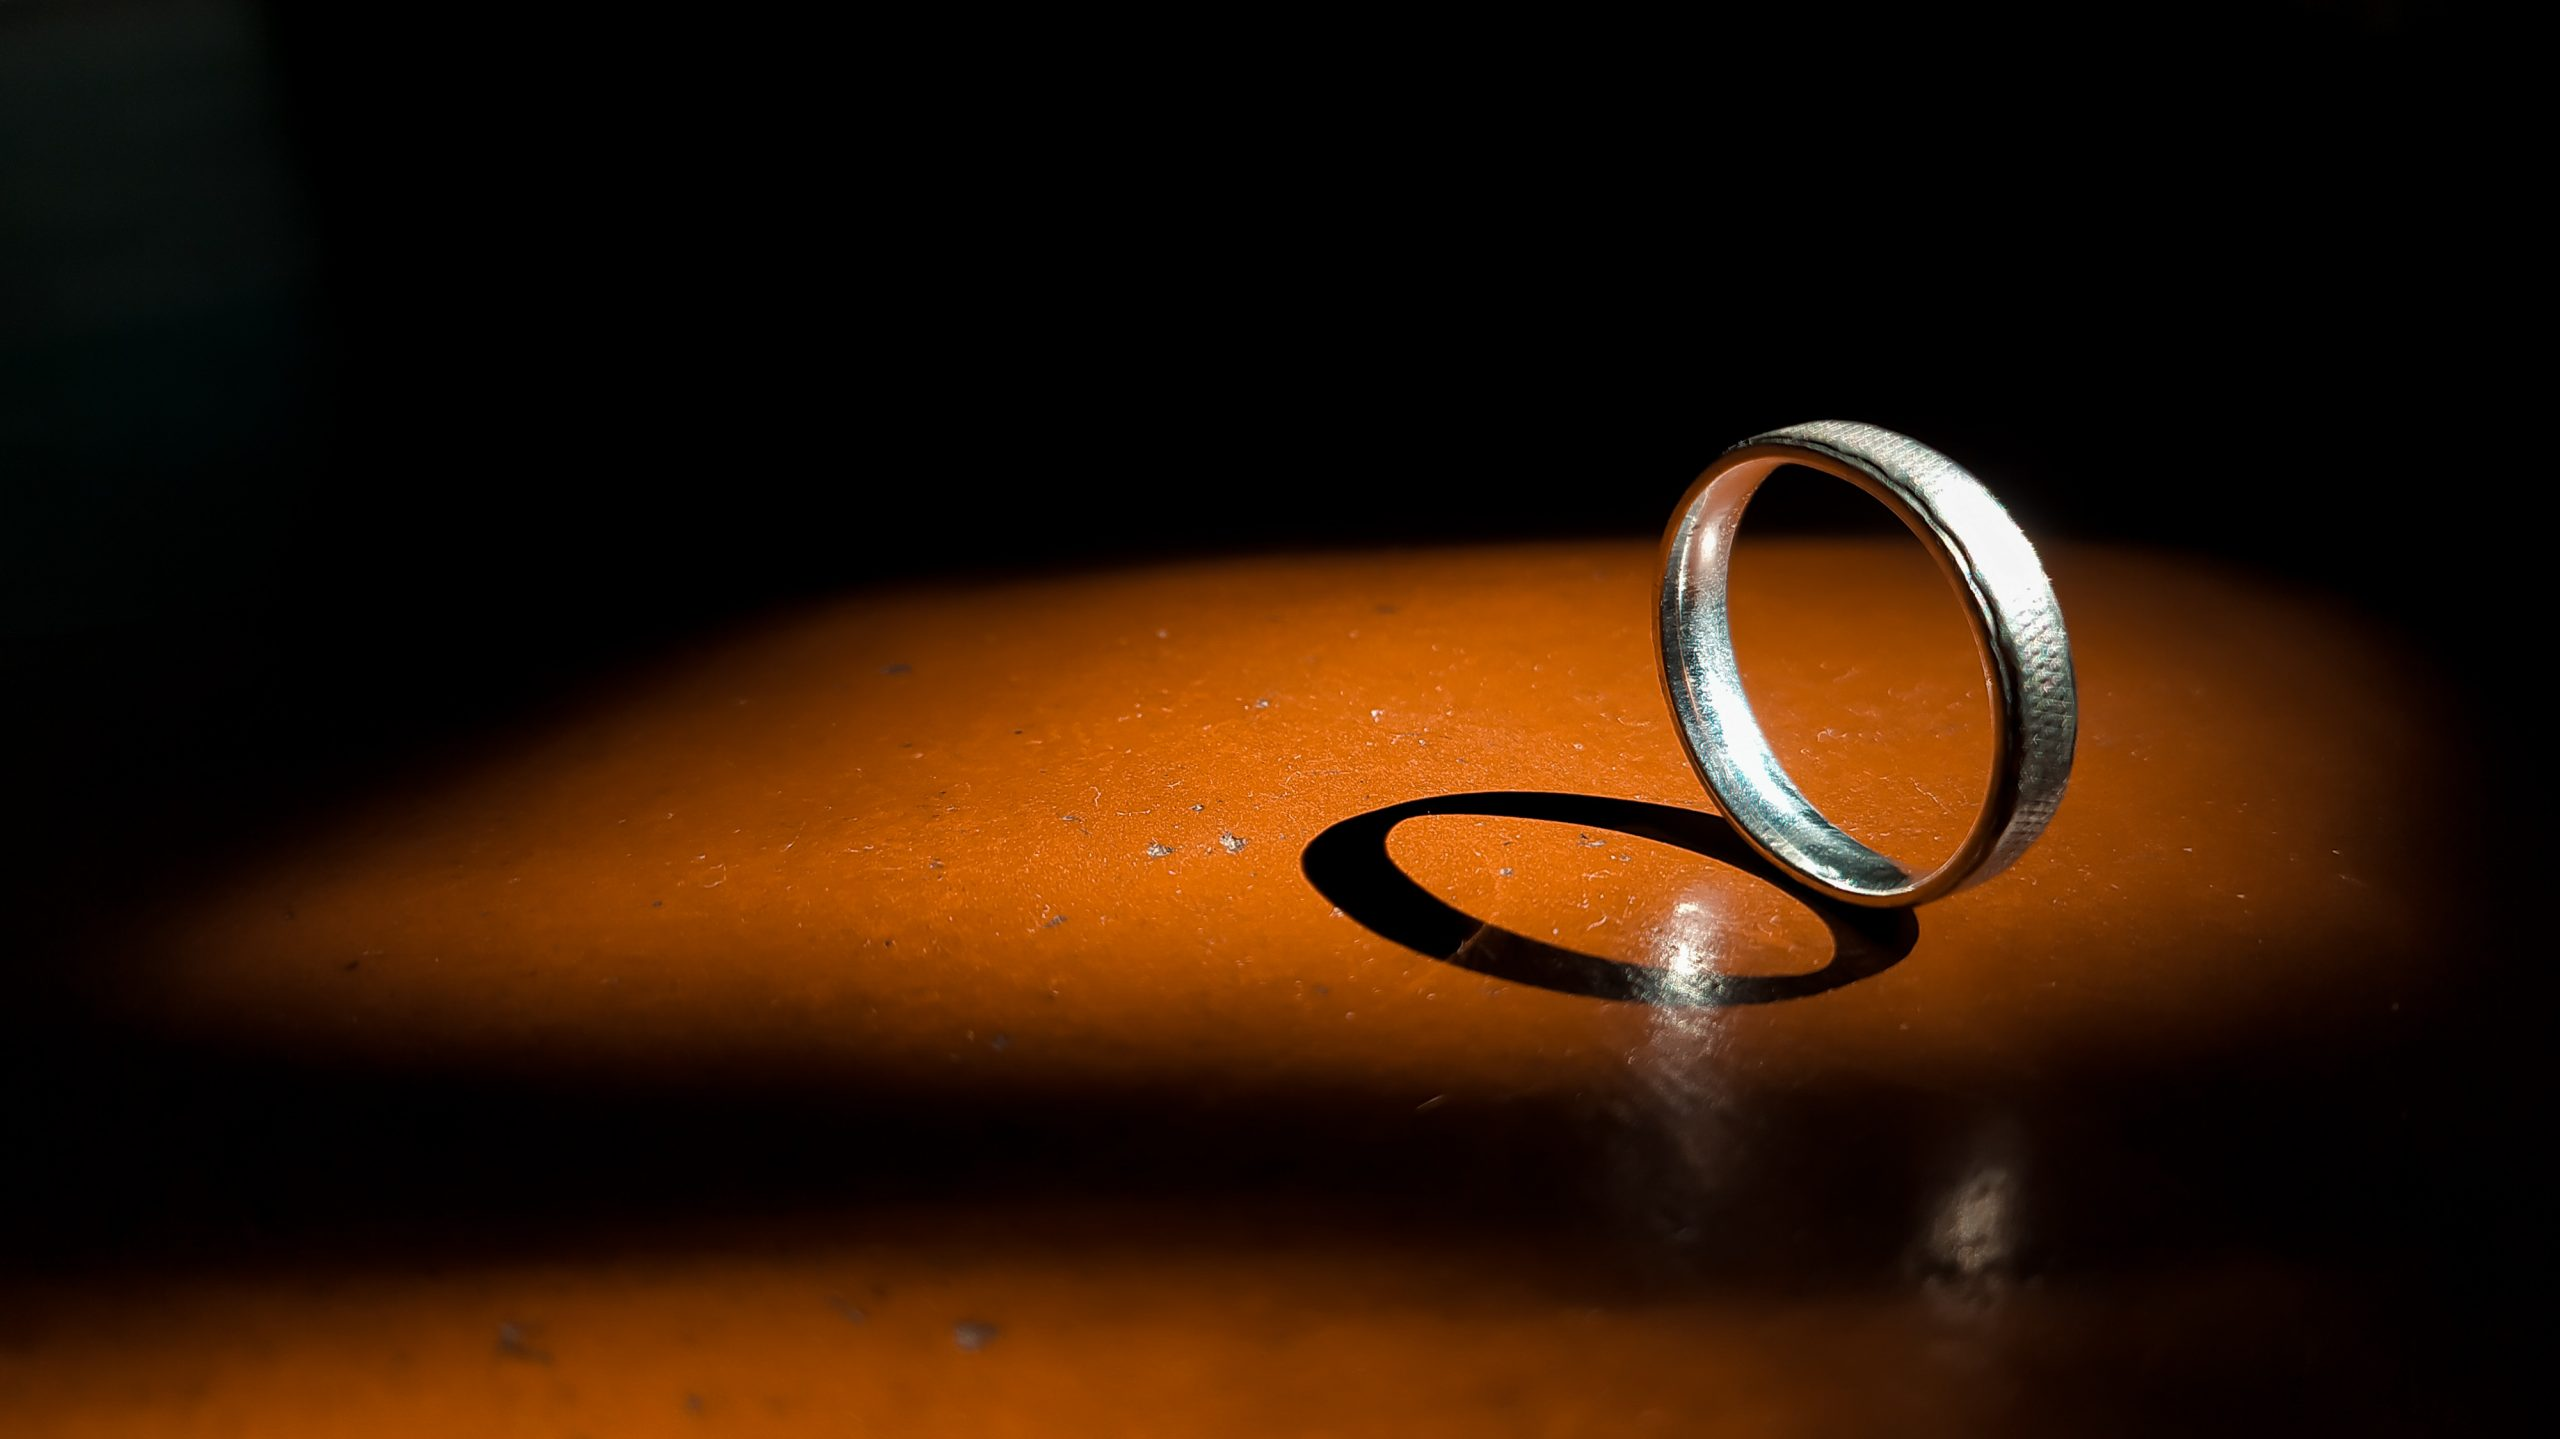 Shadow of a ring